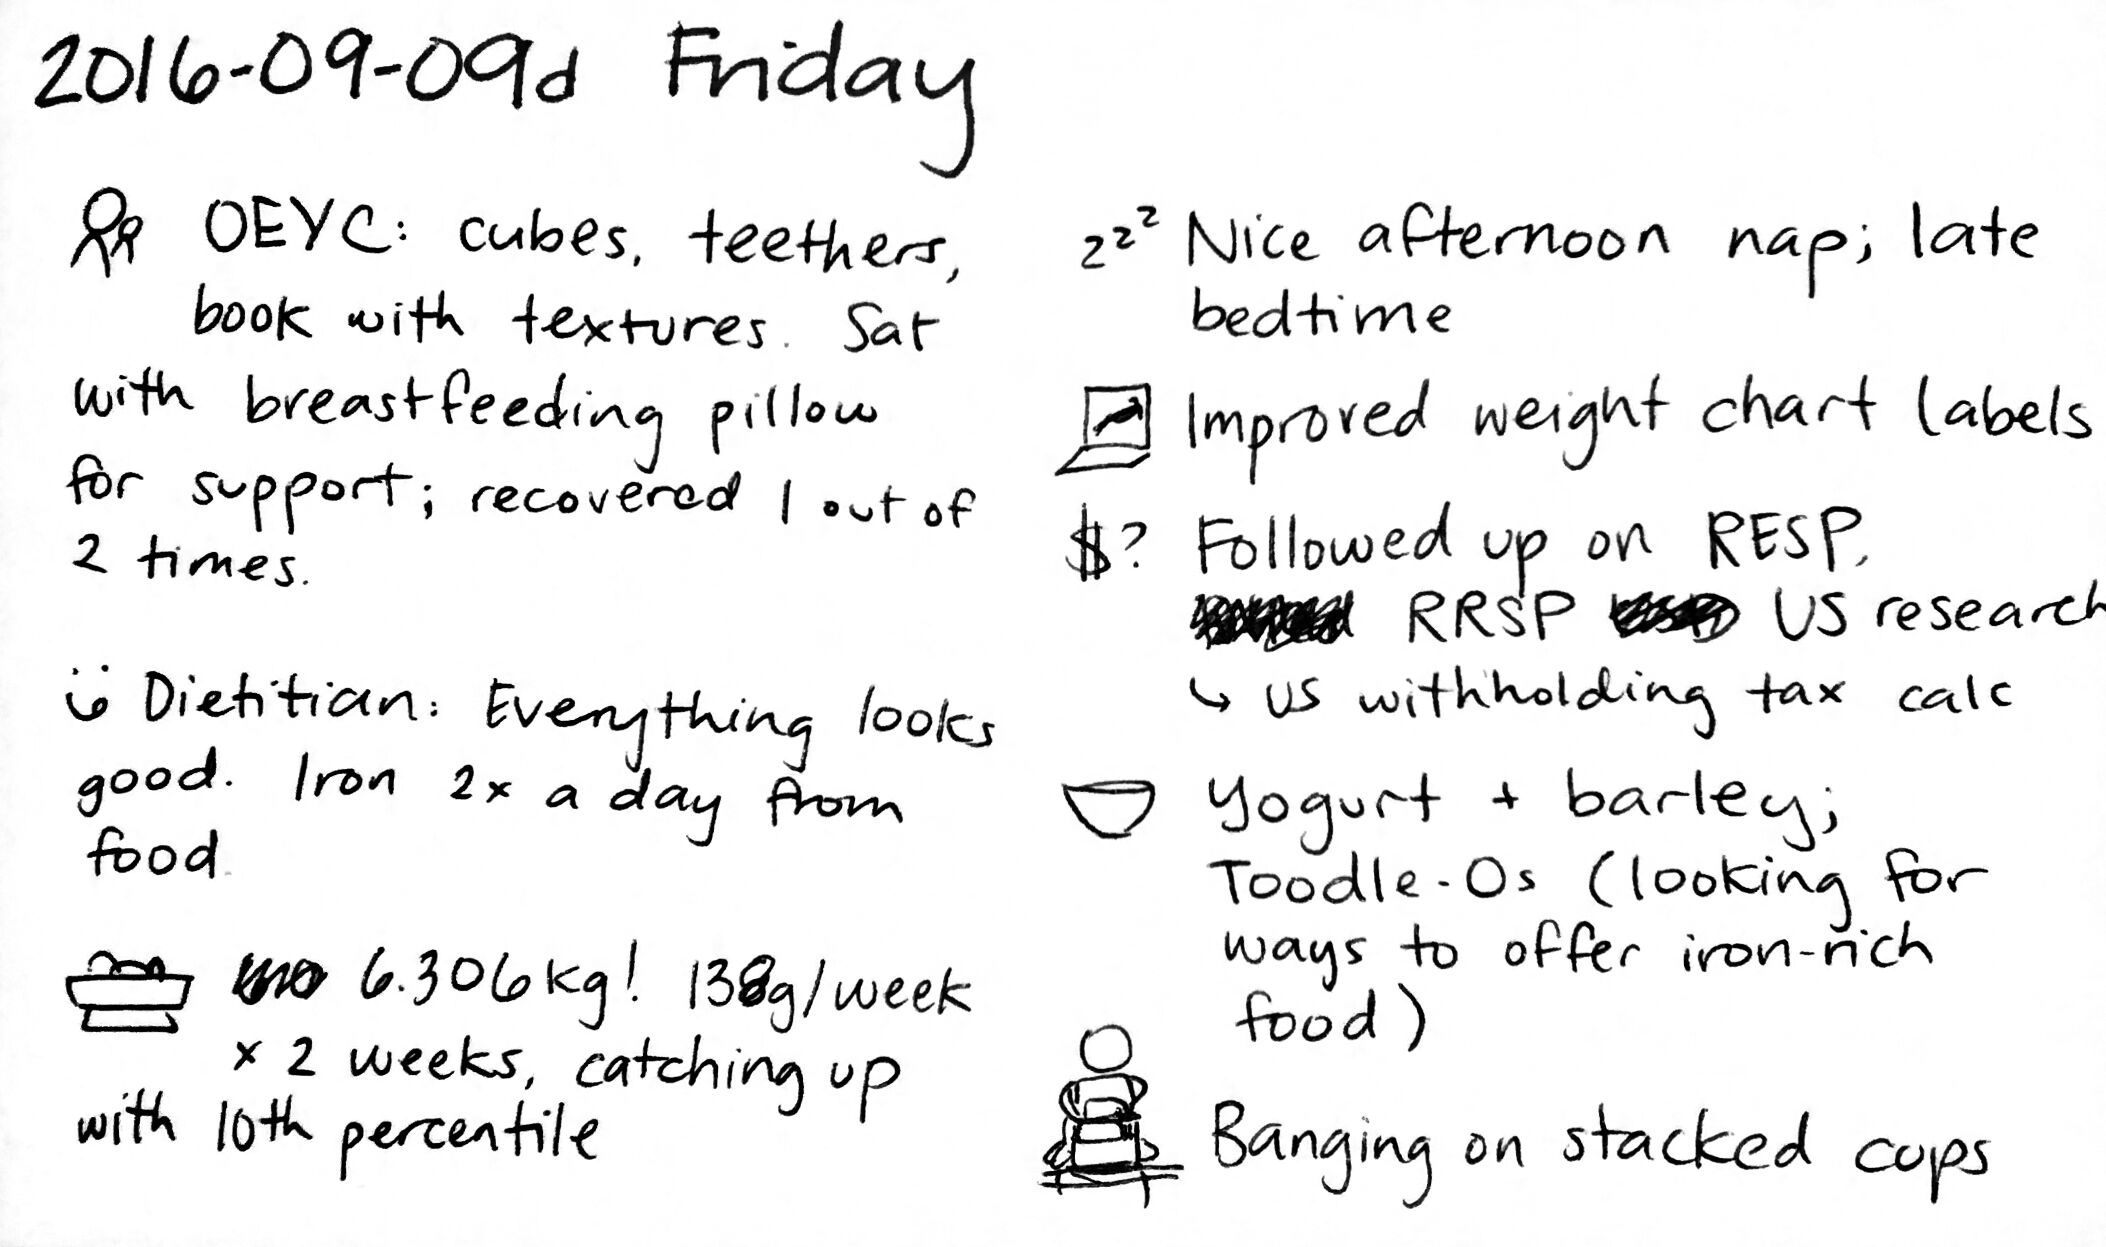 2016-09-09d Friday #journal #daily.png